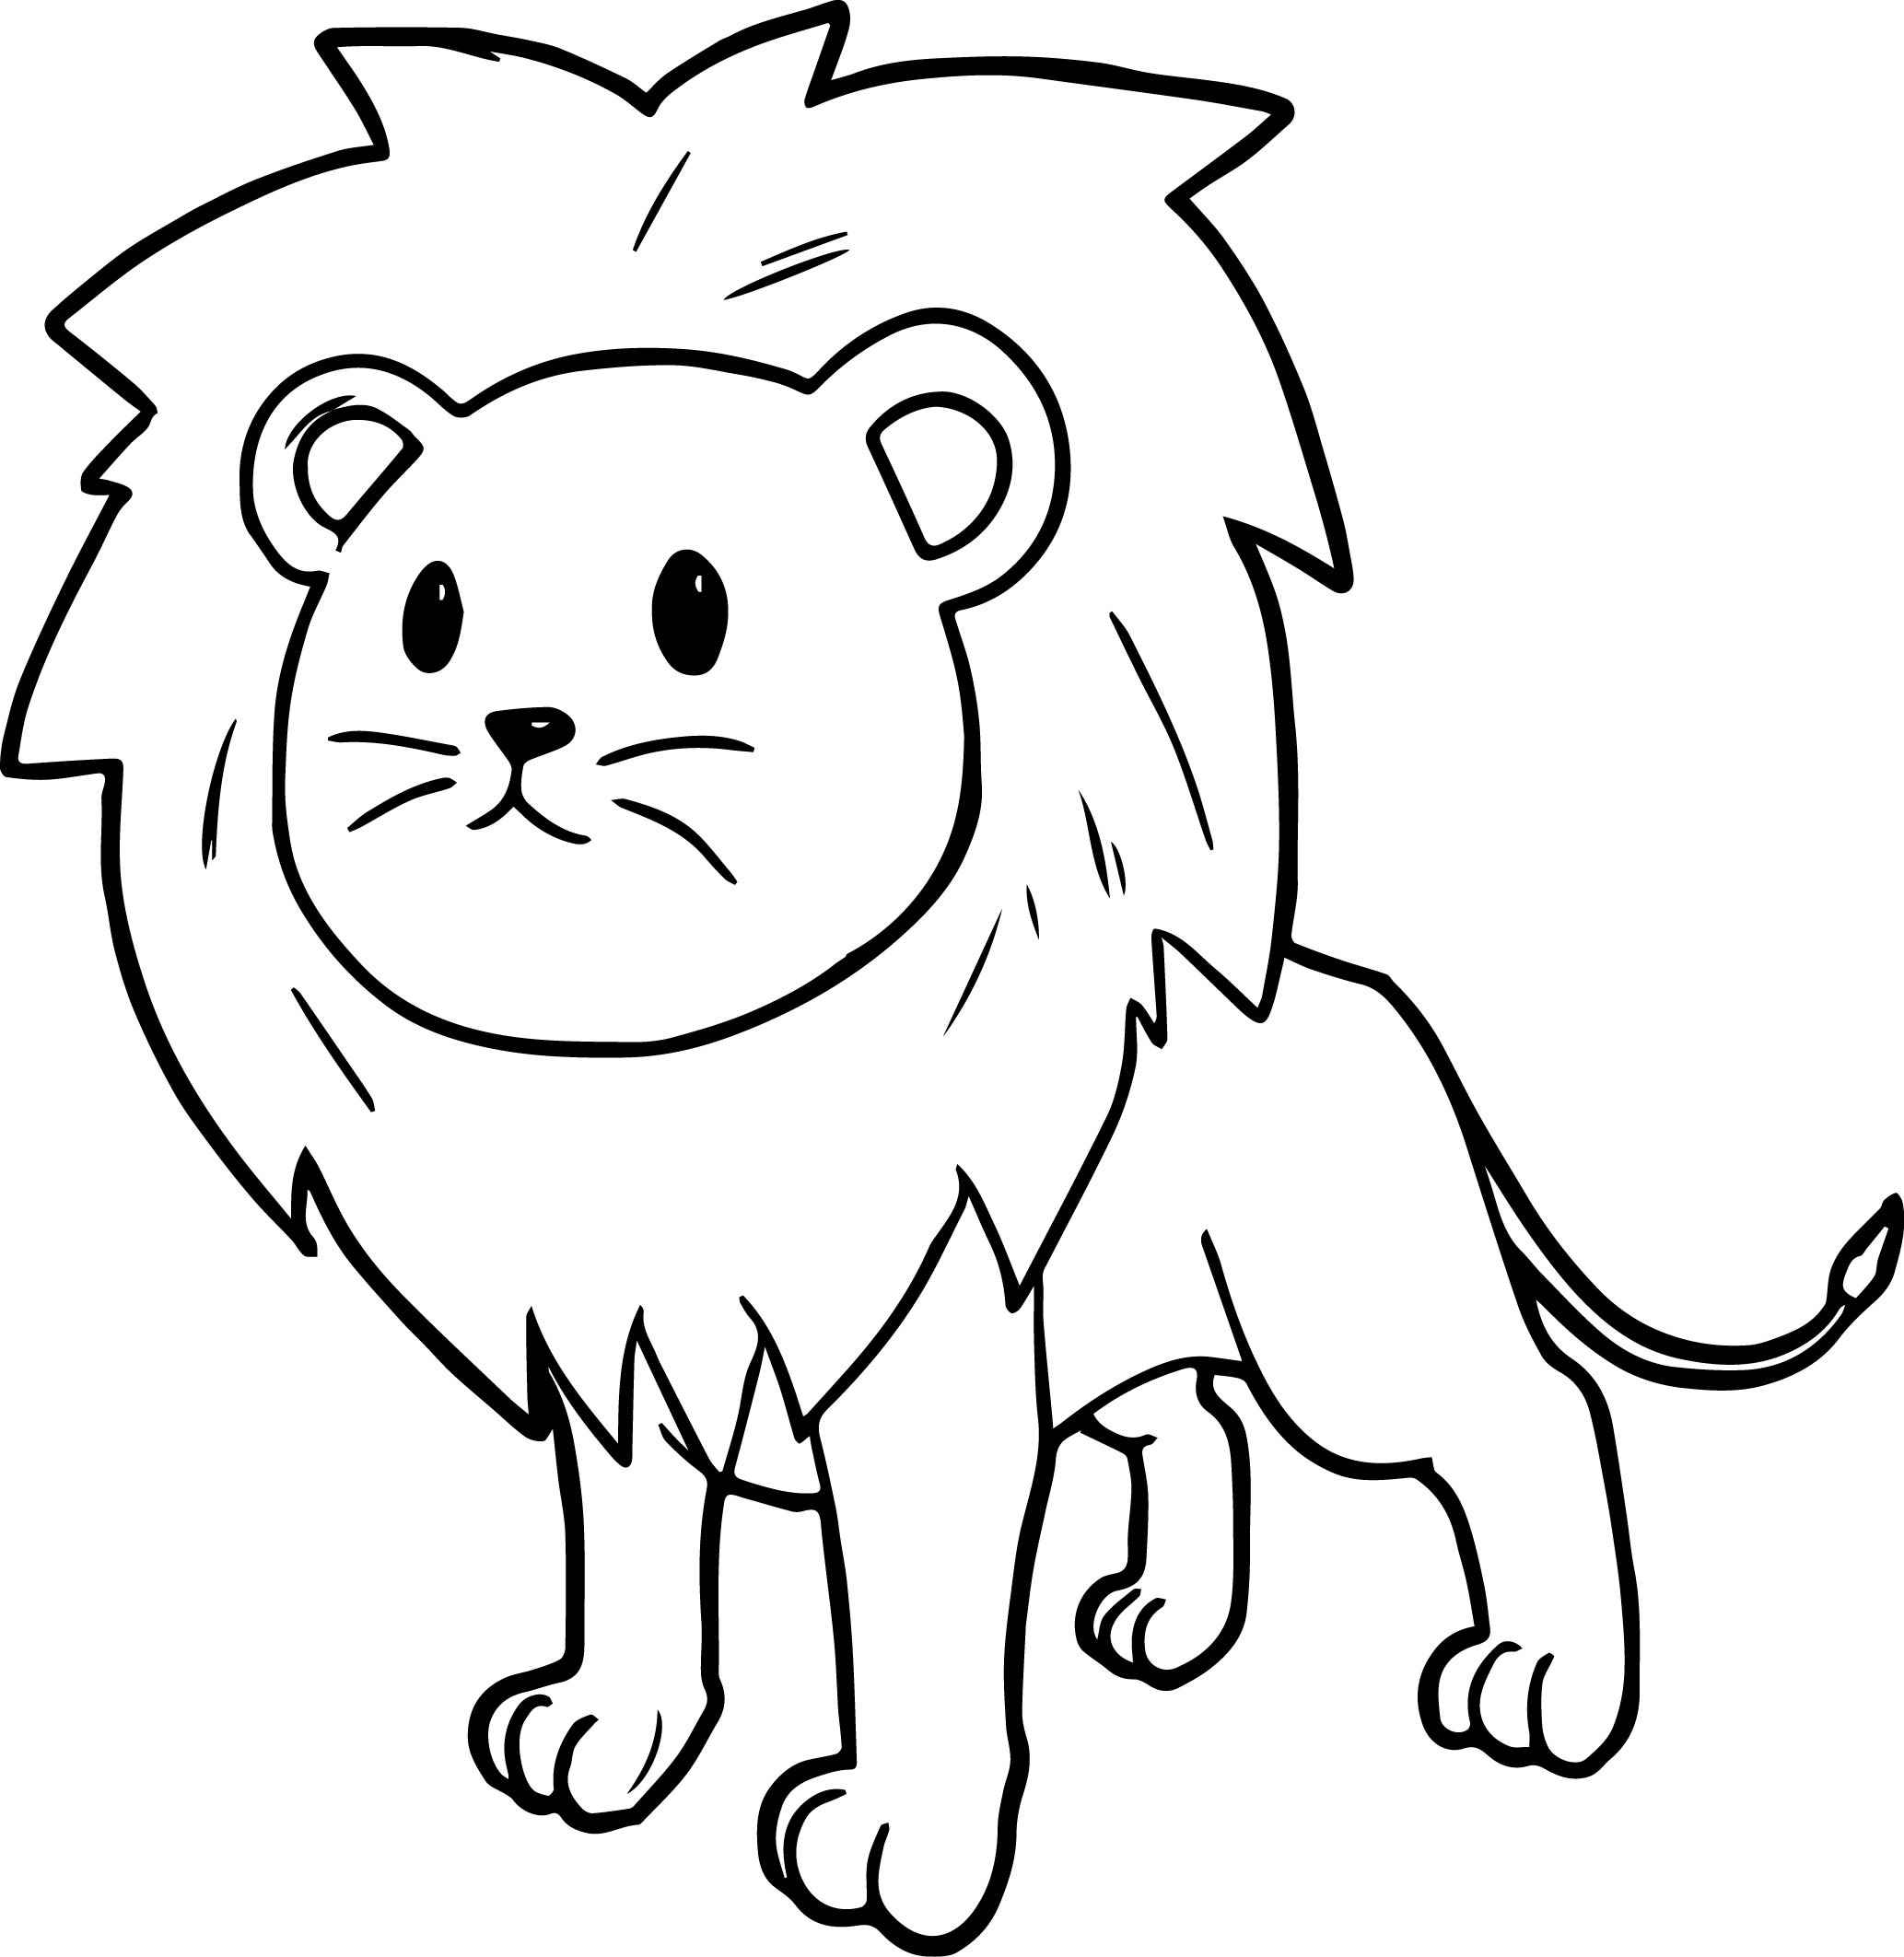 lion coloring image free easy to print lion coloring pages tulamama lion coloring image